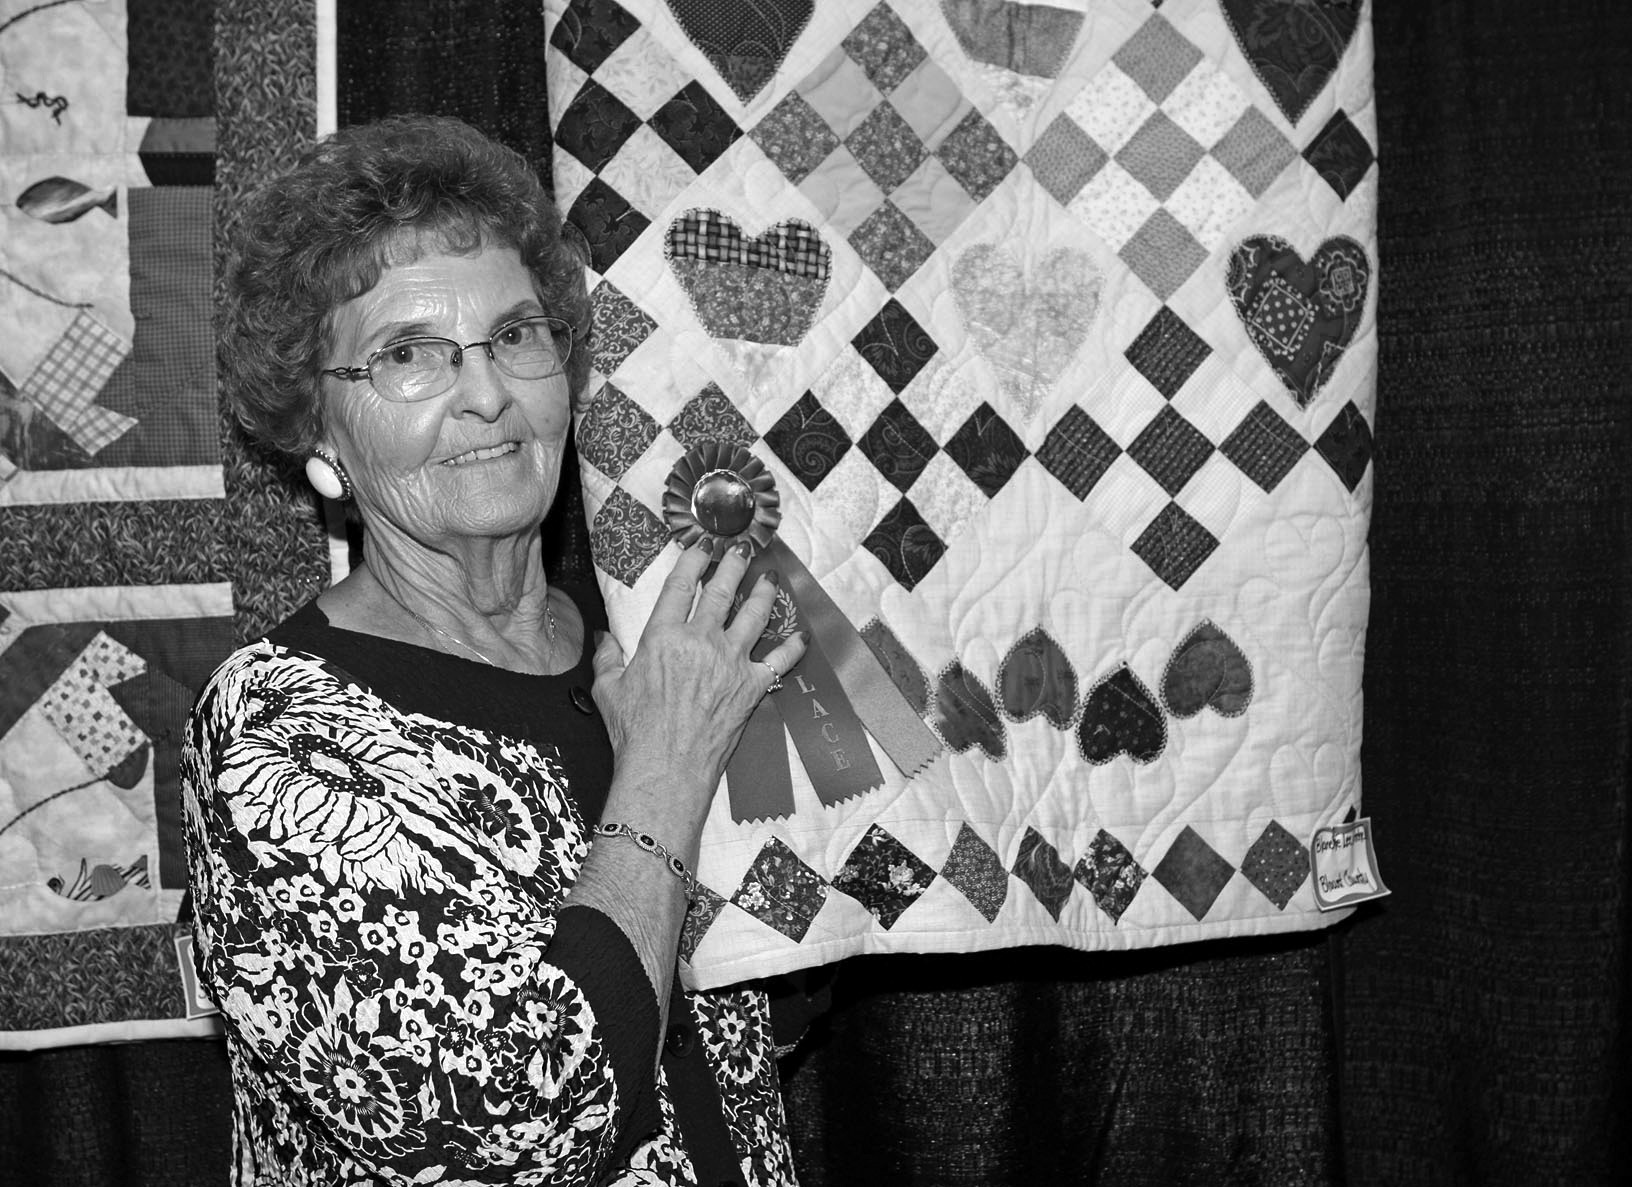 Blount County's Blanche Mitchell proudly displays her first-place winner in the machine-stitched quilt contest held Aug. 6 in conjunction with the Alabama Farmers Federation's conference at the Von Braun Center in Huntsville. An inveterate prize-winner with her creations, Mitchell placed second in the hand-stitched quilt contest. It was all part of the annual Cotton, Sewing and Quilting Contests and Tablescapes competition sponsored by the Alabama Farmers Federation Women's Leadership Committee.